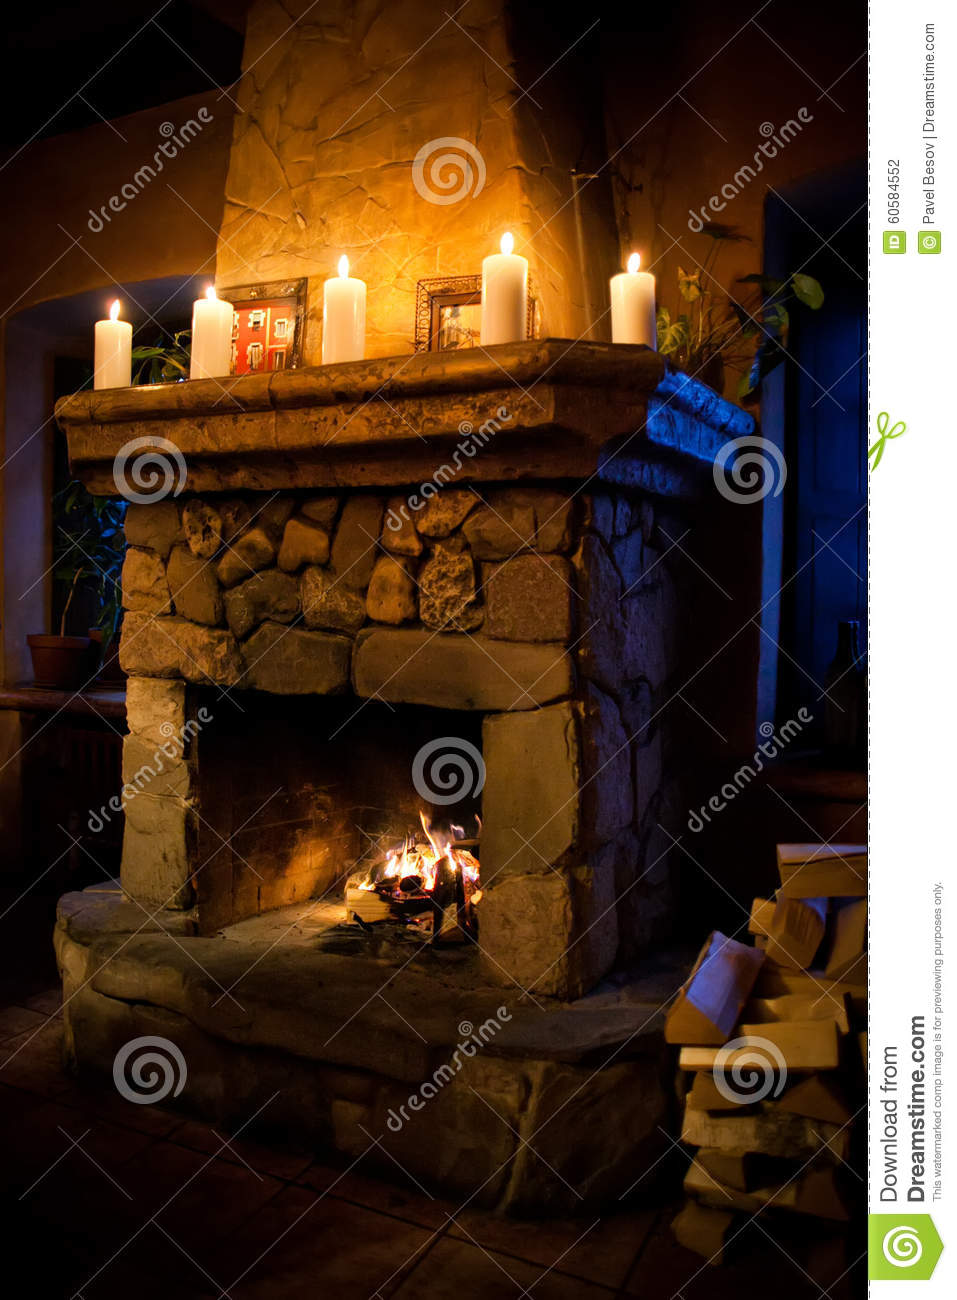 Romantic christmas interior. Fireplace room with chimney, candles and  woodpile. - Romantic Christmas Interior. Fireplace Room With Chimney, Candles